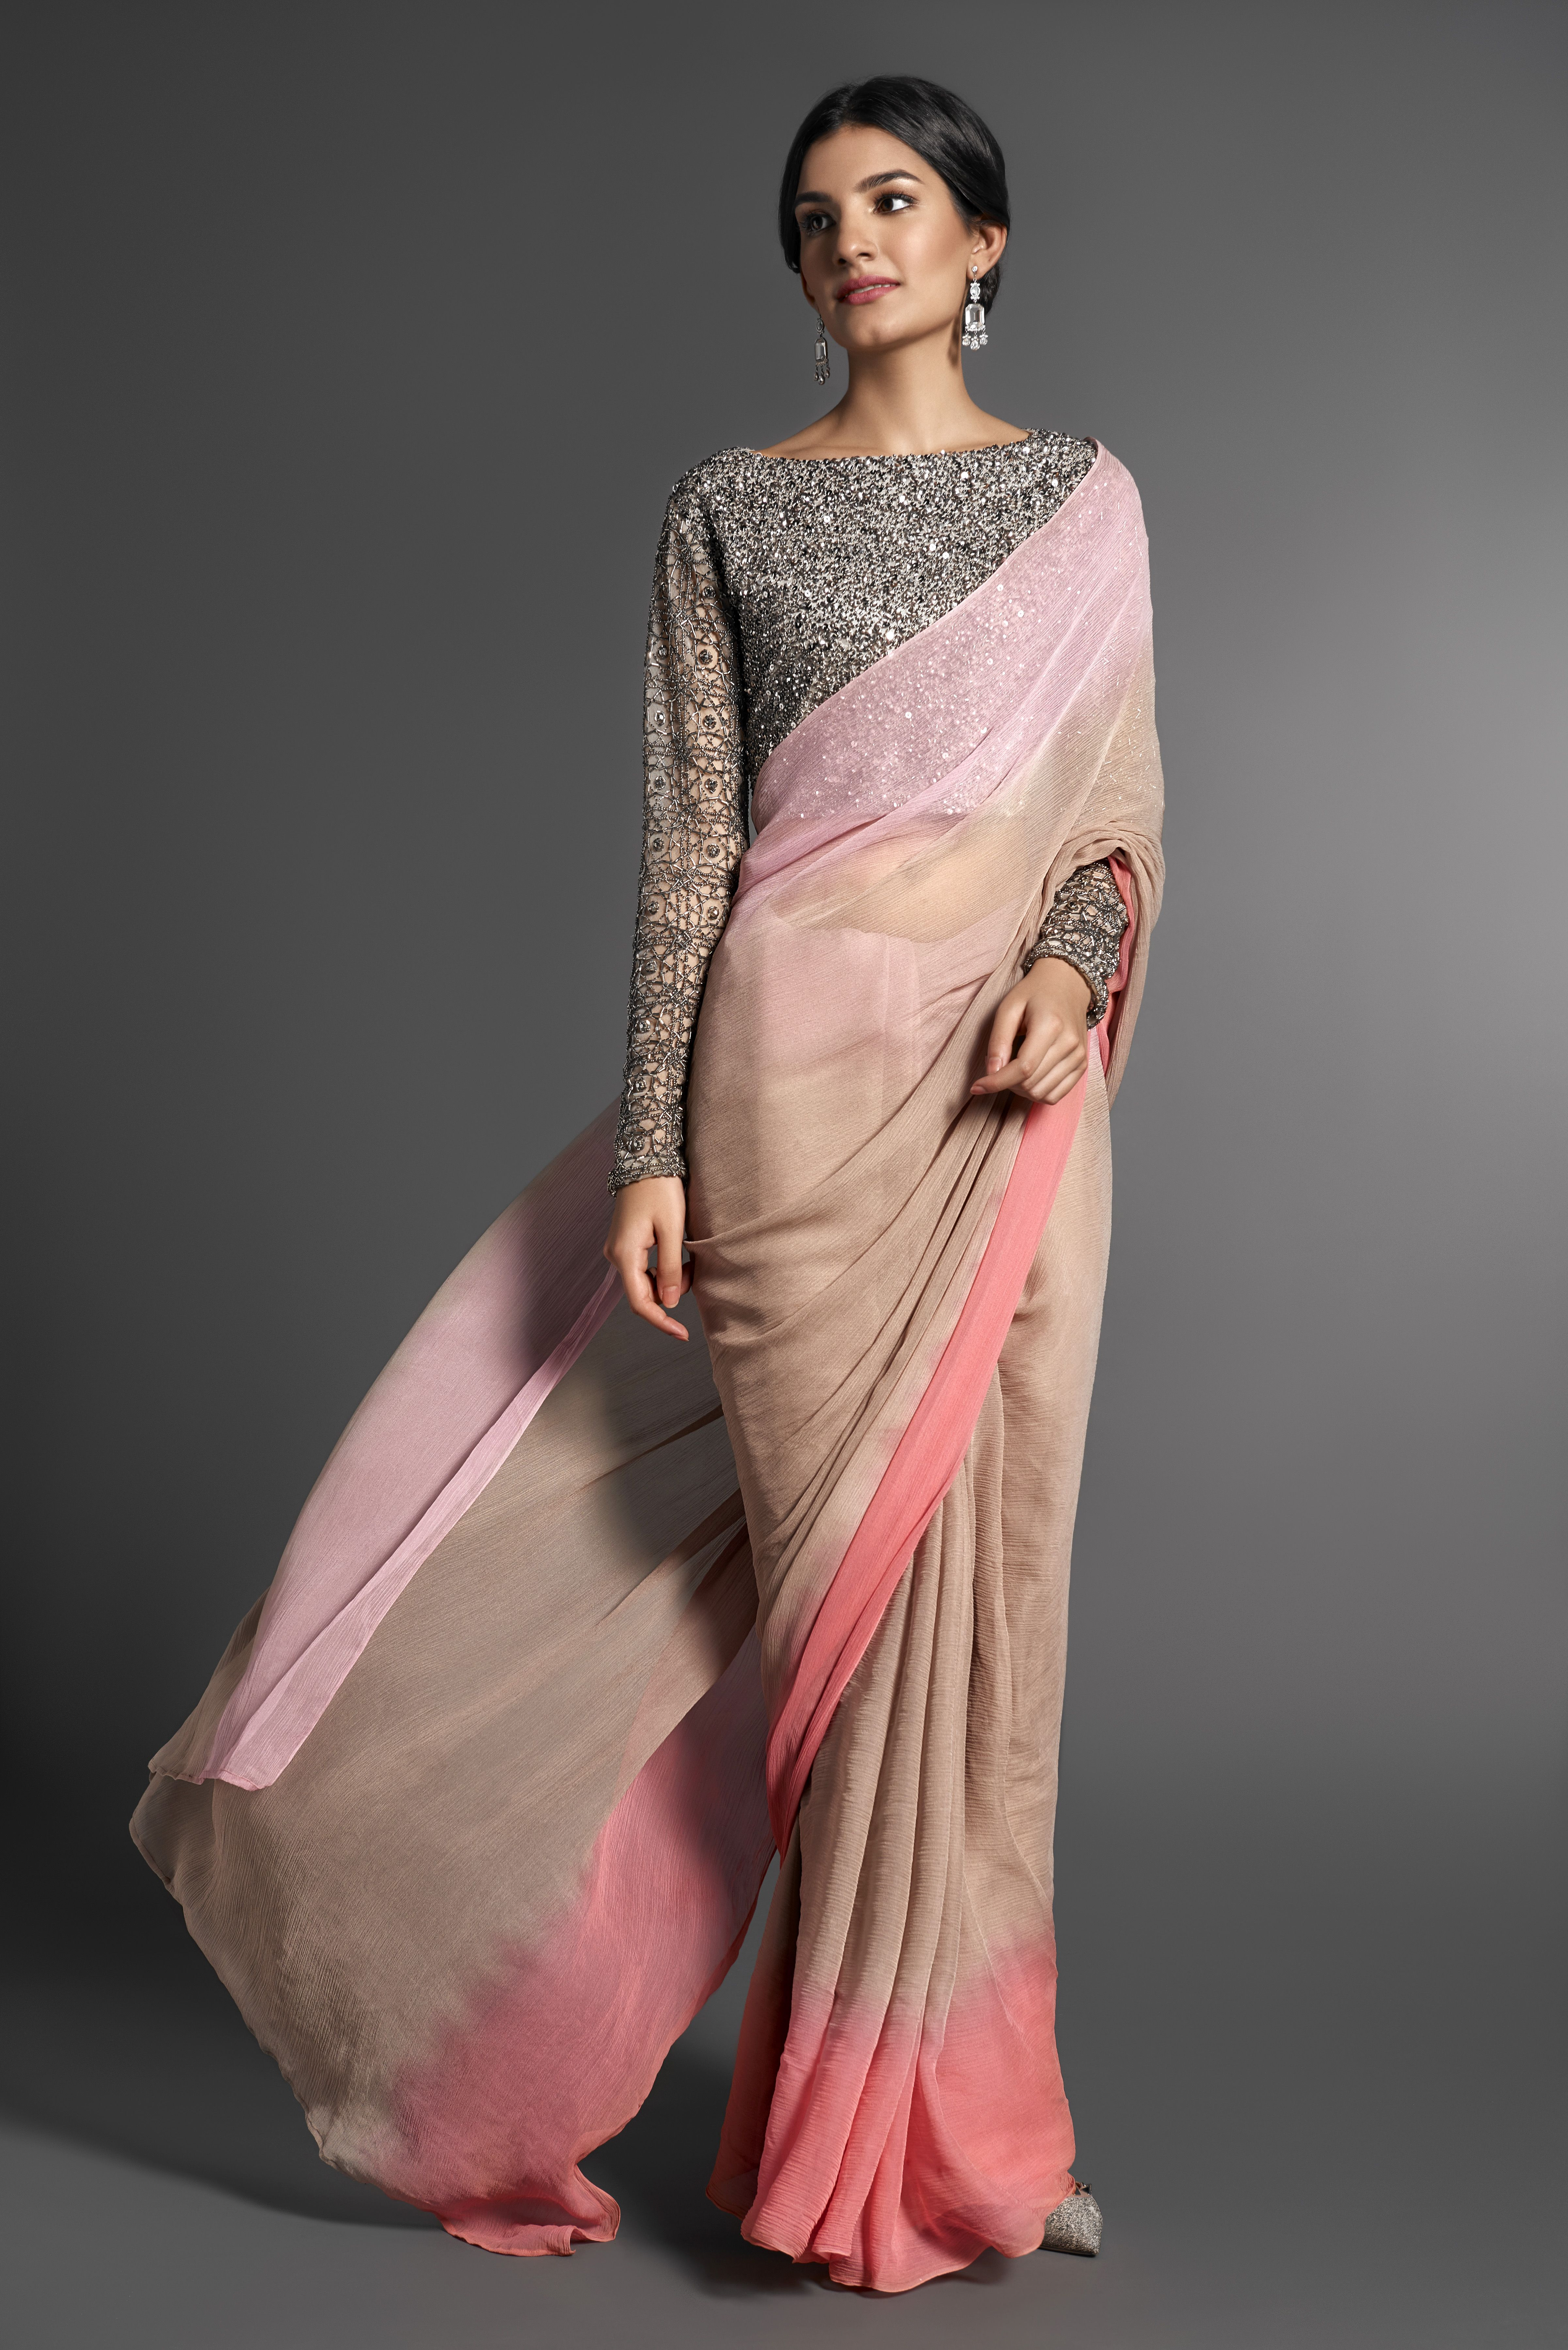 Shaded chiffon sari with a beaded blouse designed by ...